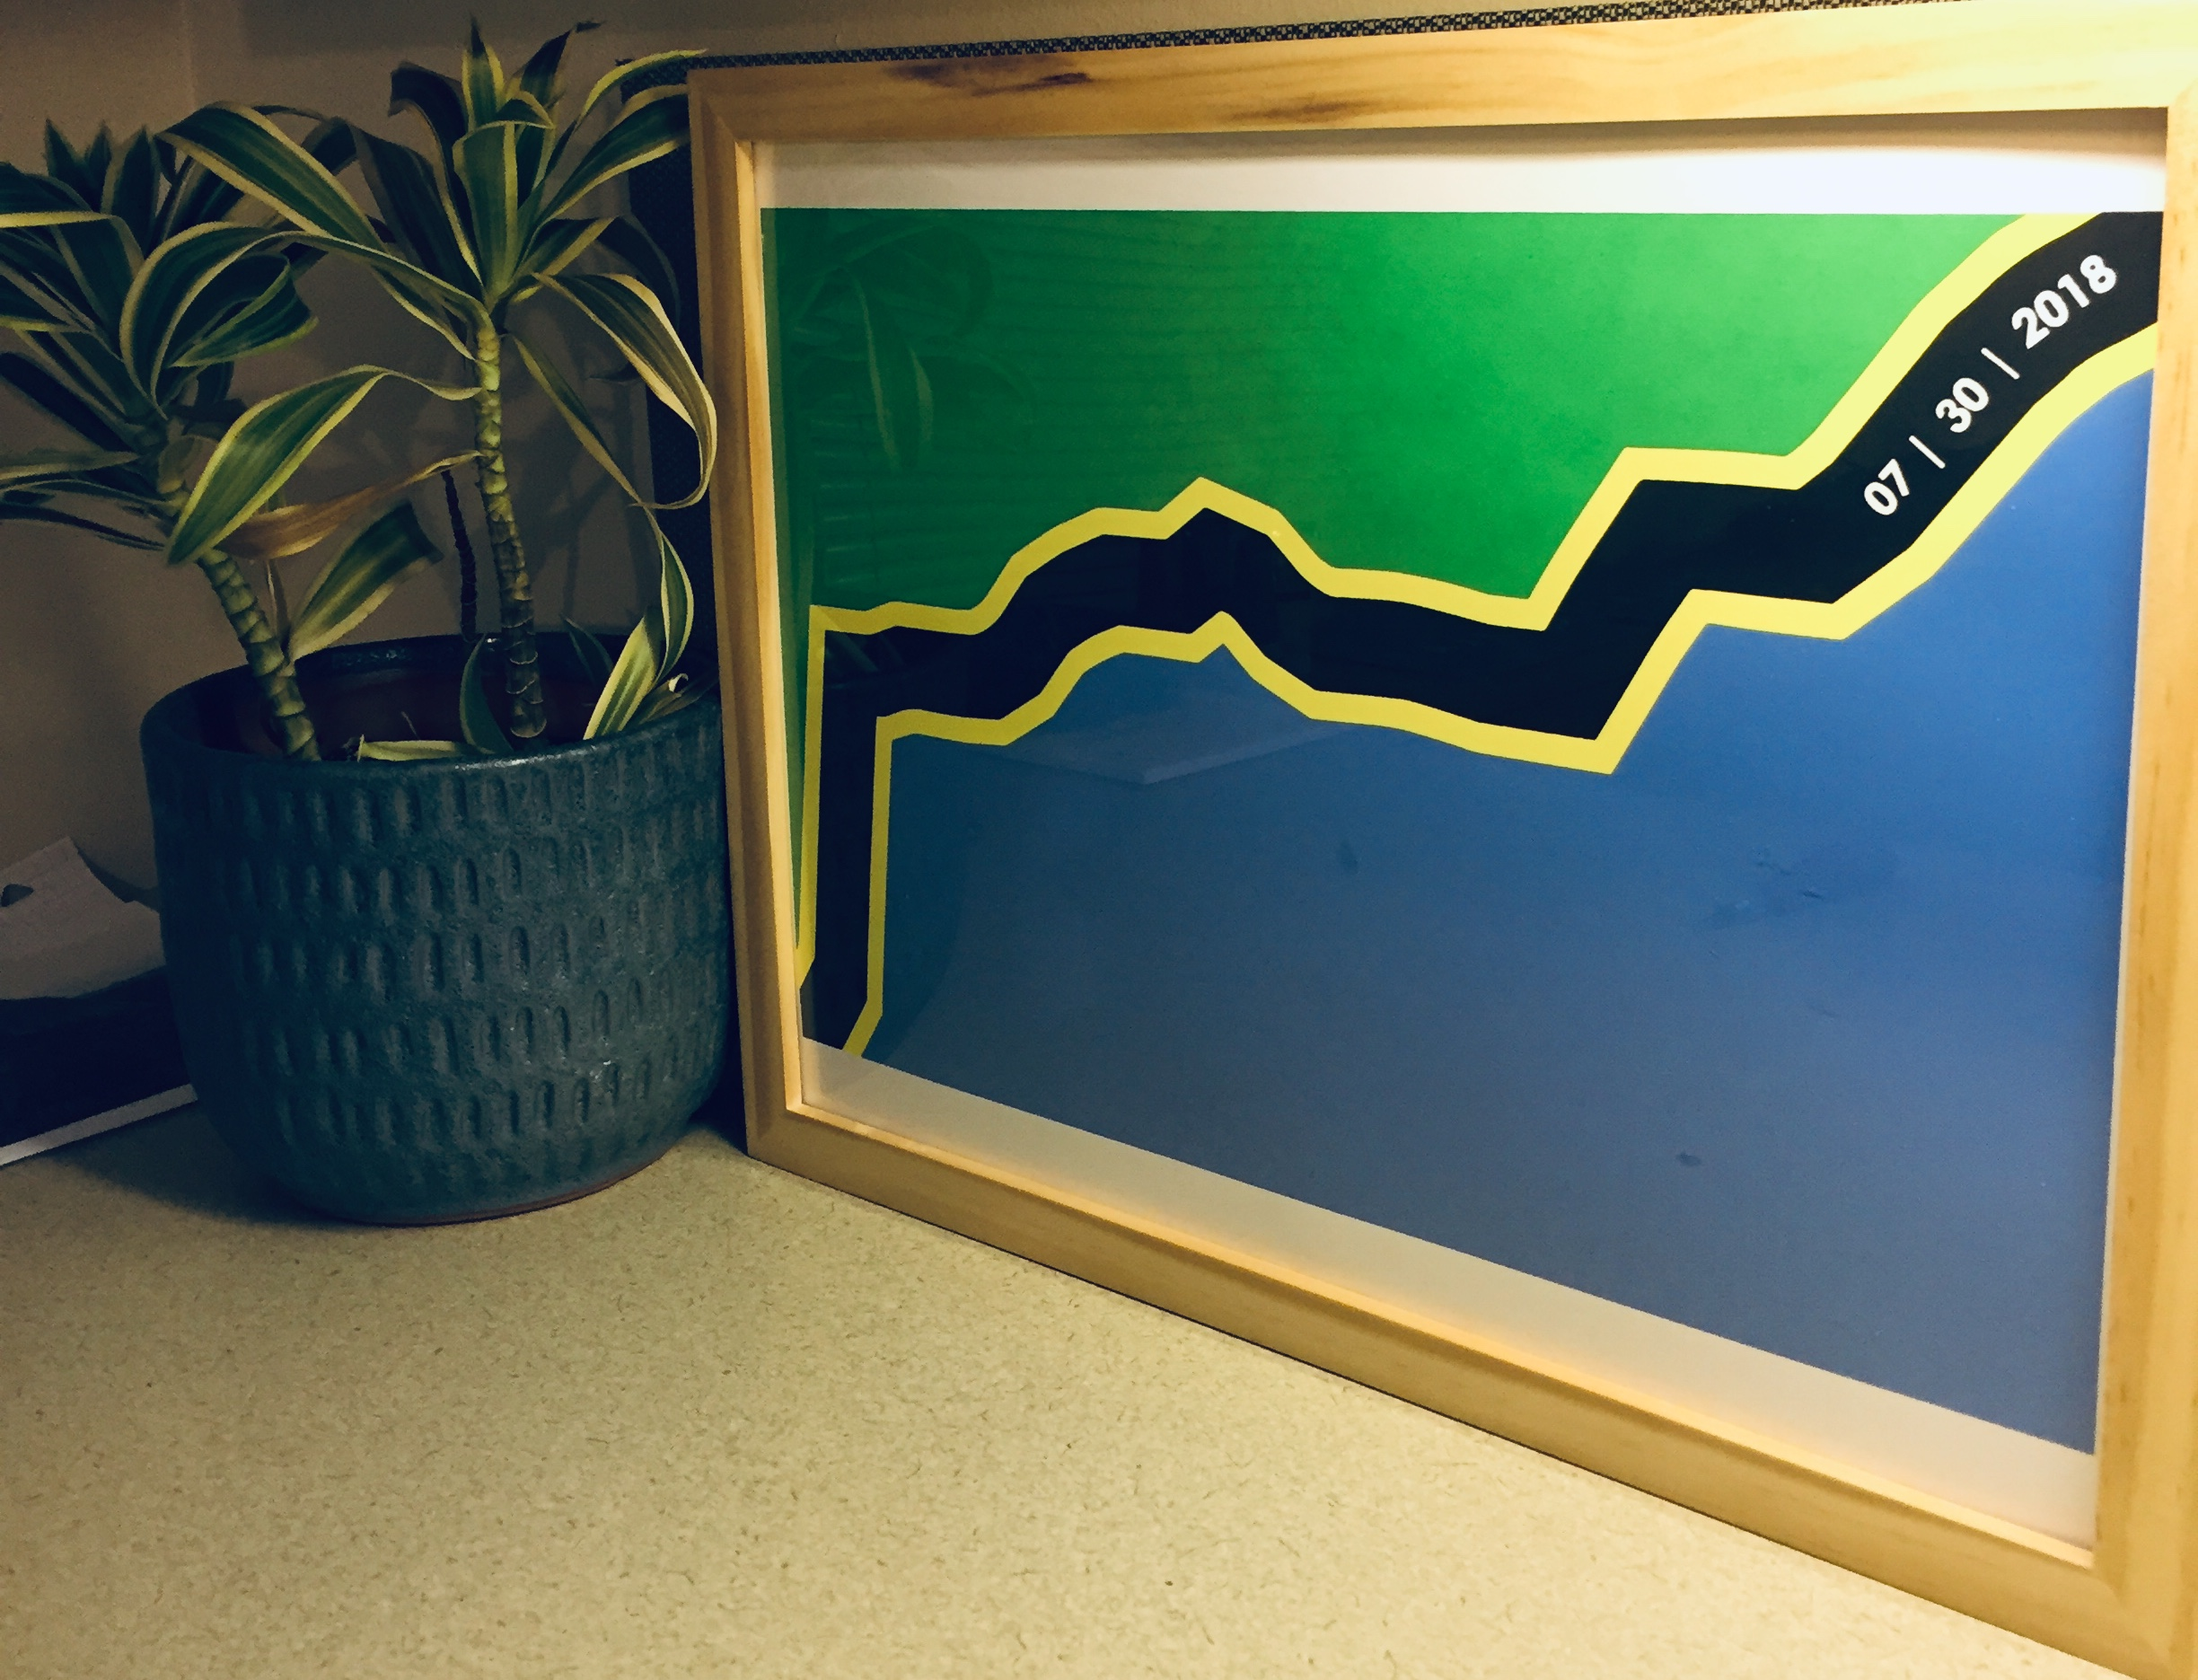 The Print - The final print seeks to replicate the flag of tanzania while replacing the middle stripe with the unique hike signature compiled during the summit.